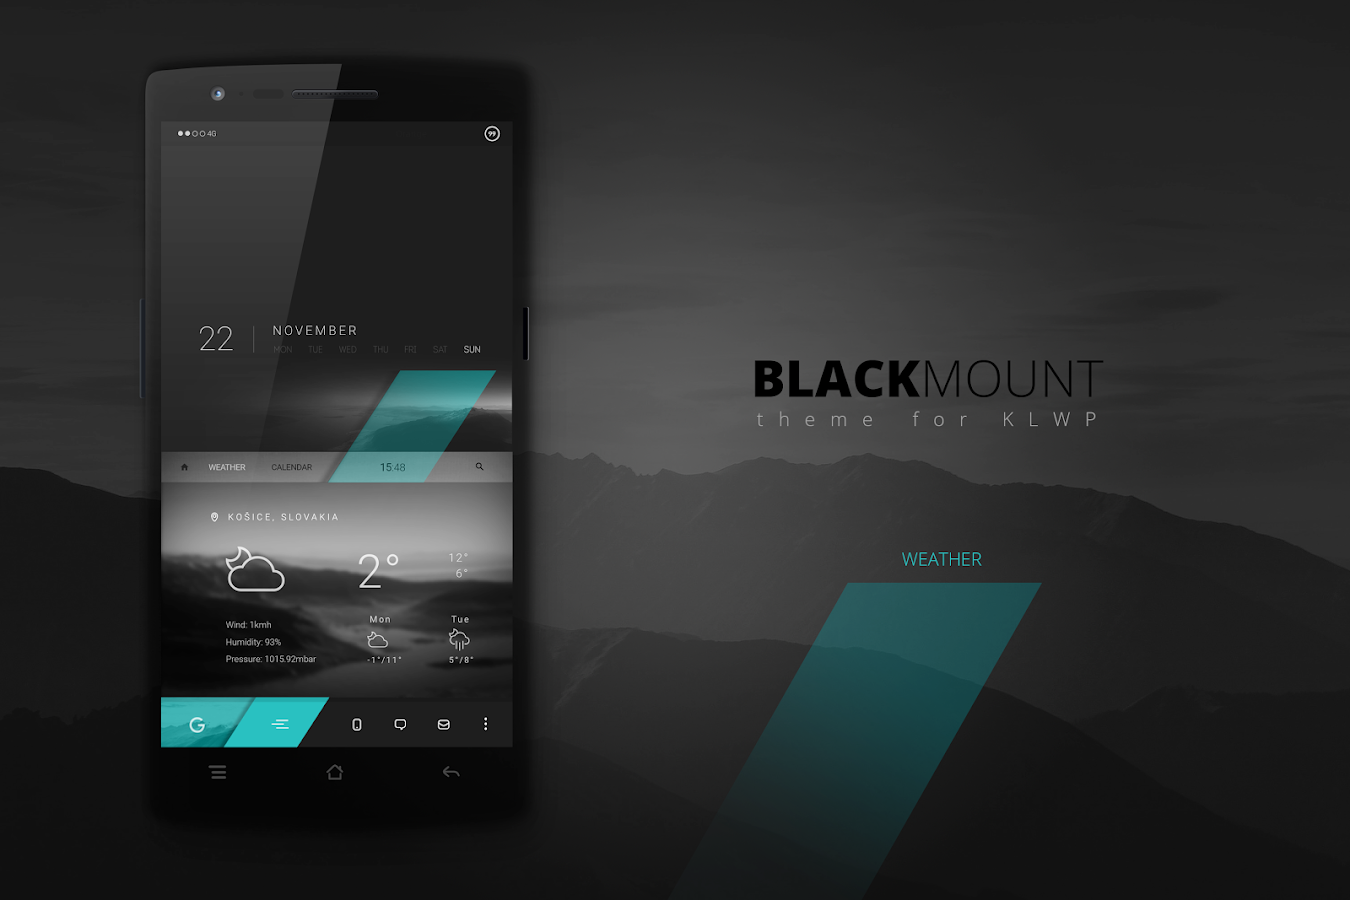 Blackmount theme for KLWP Screenshot 1